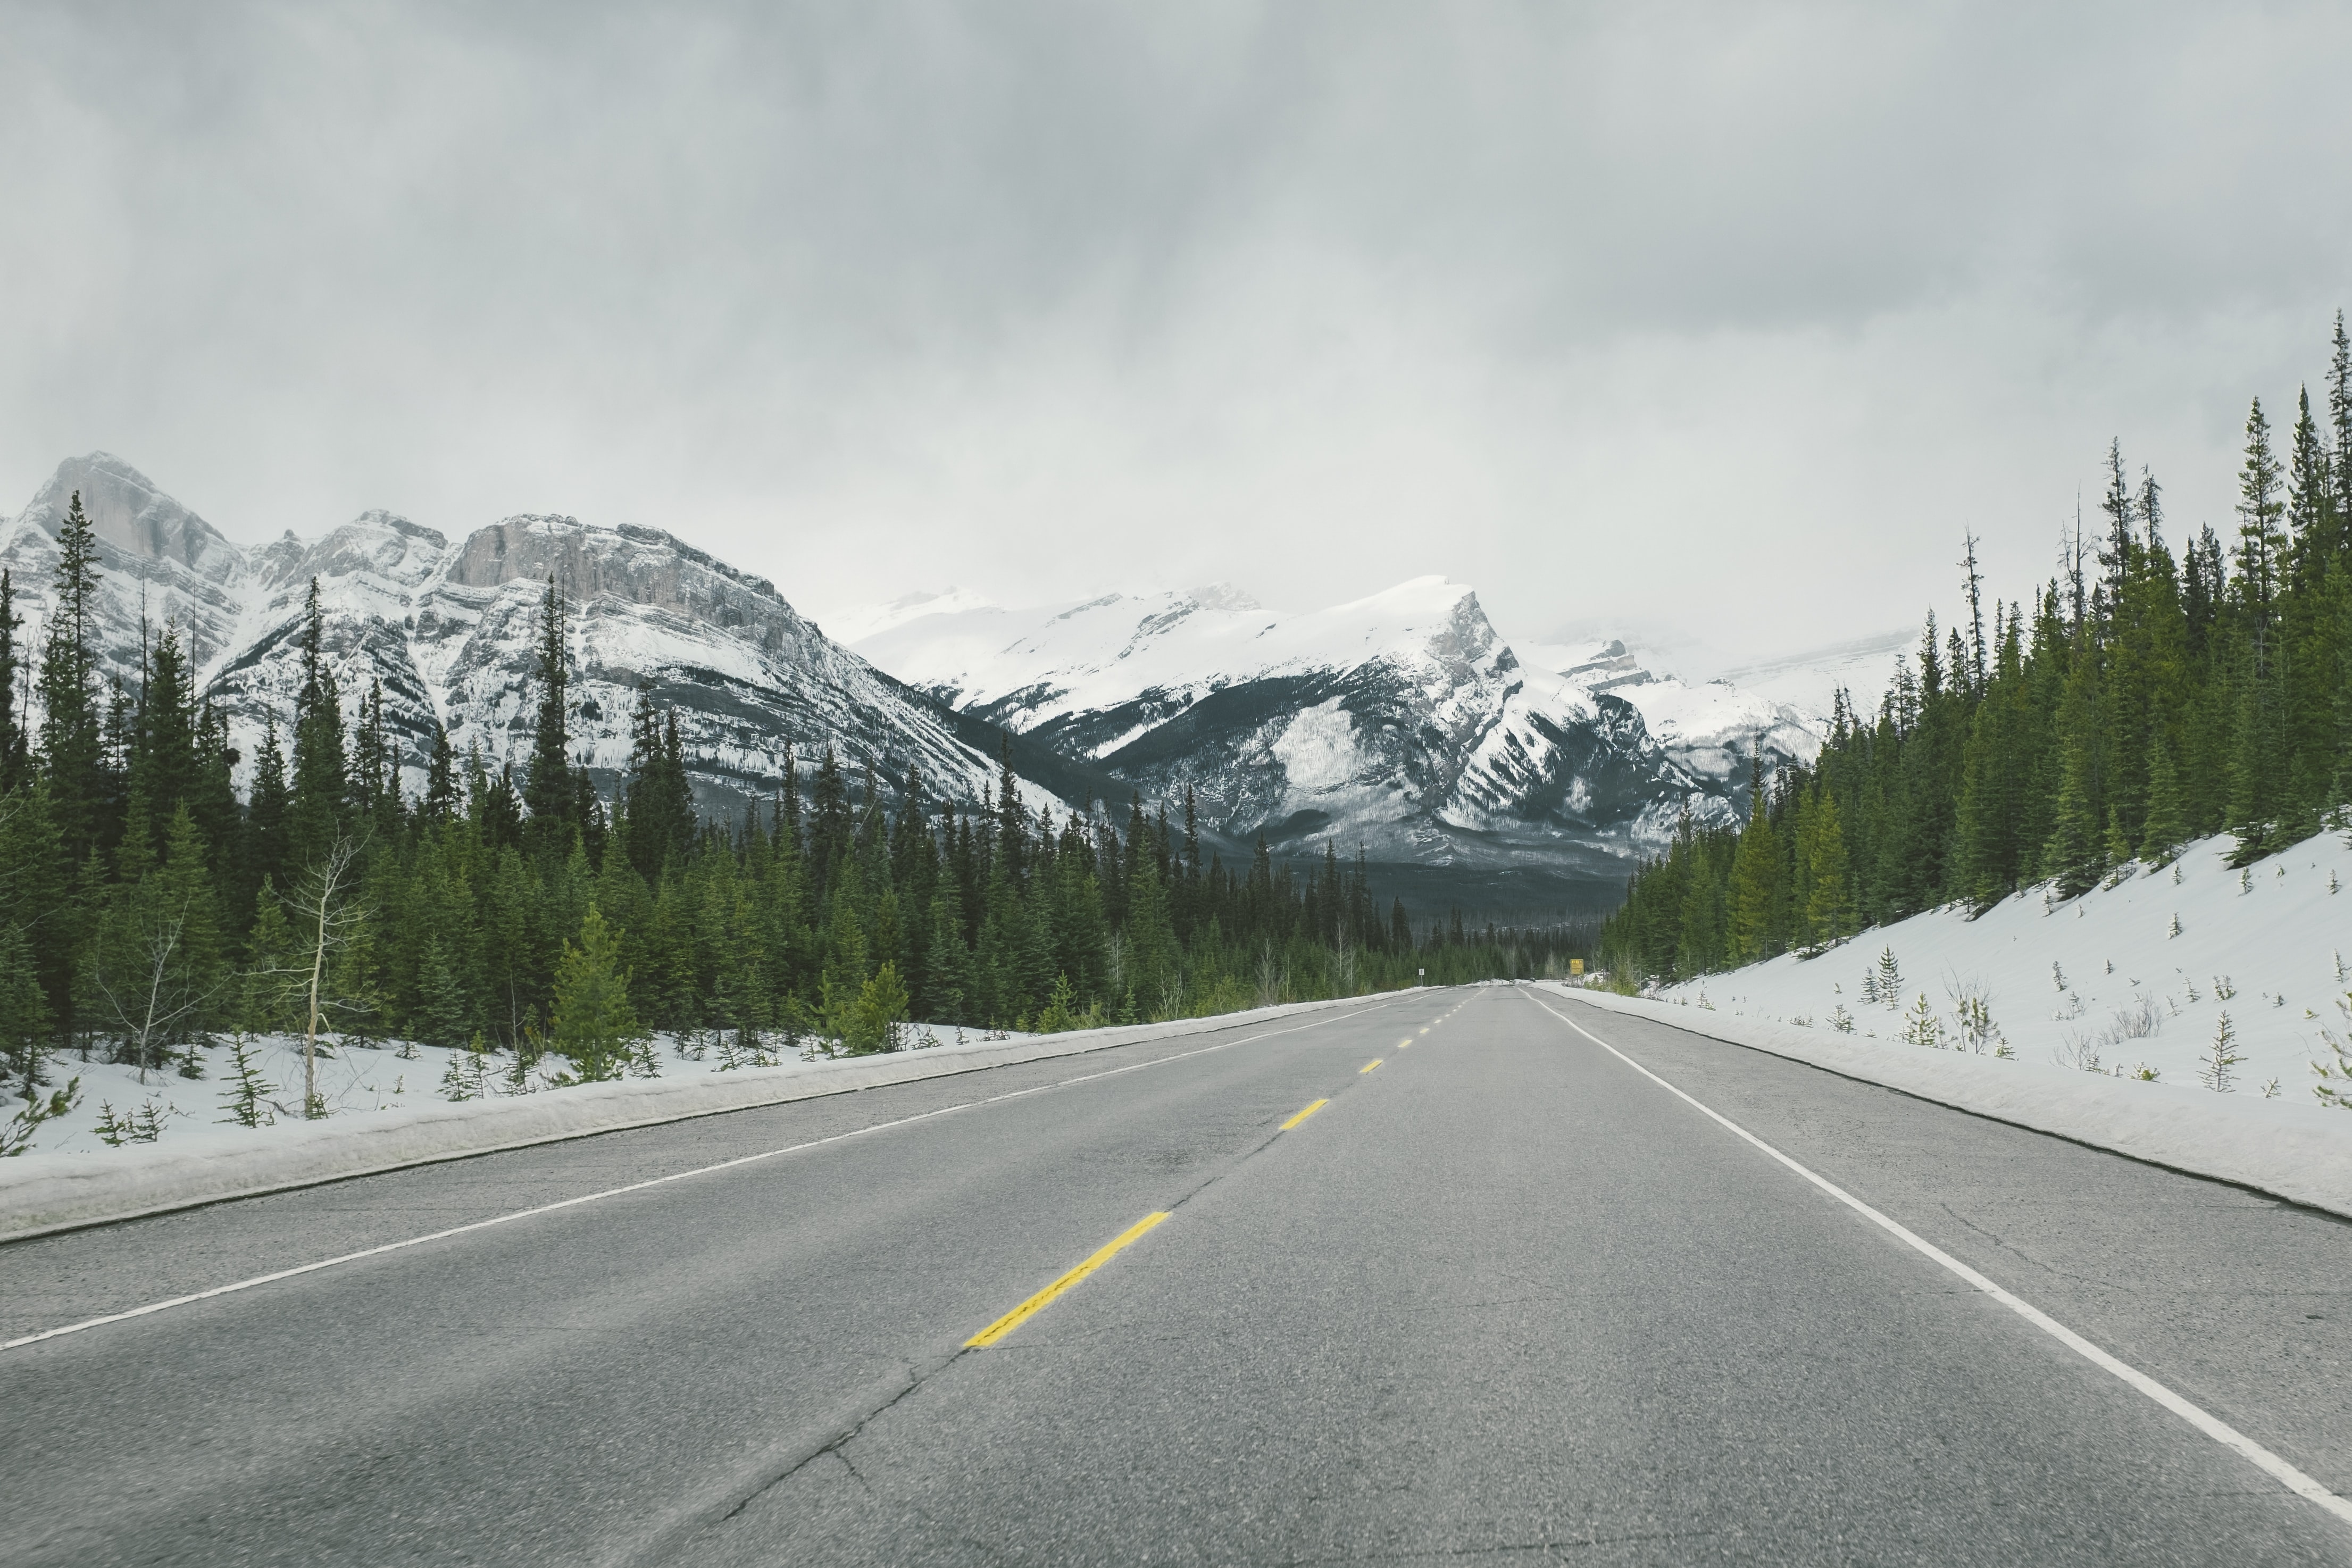 An empty asphalt road running towards snowy mountain peaks in Jasper